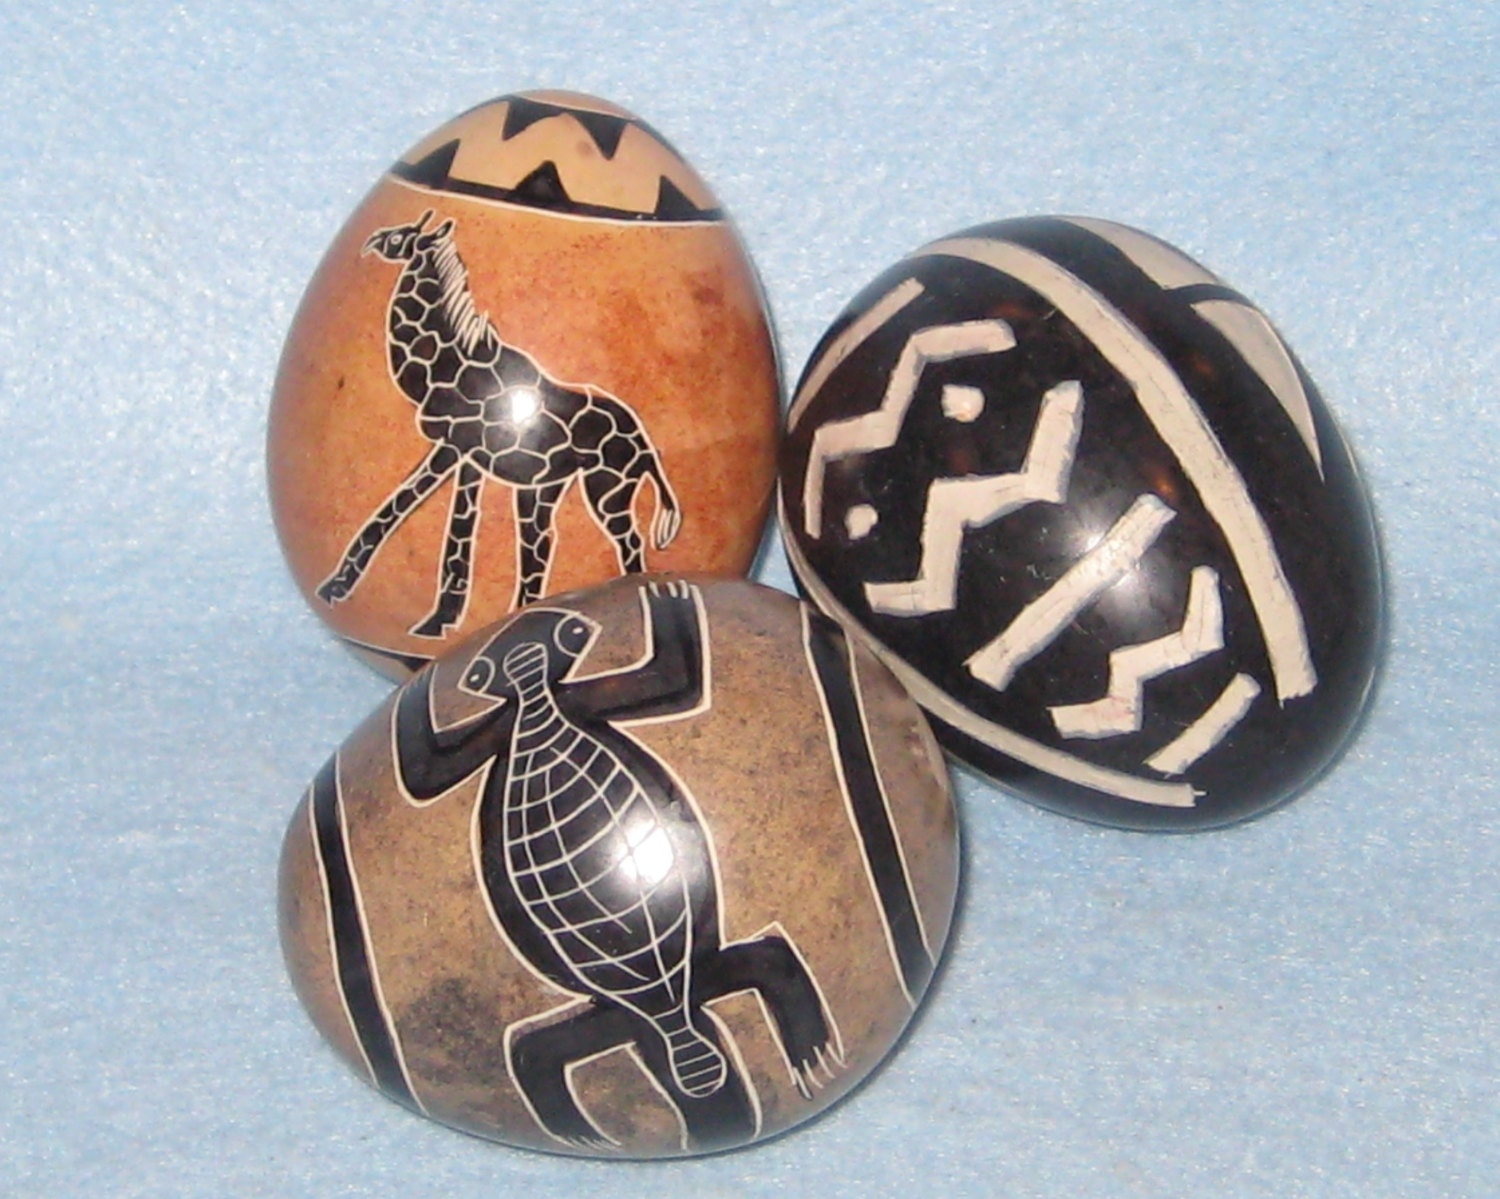 Soapstone decorative eggs made in kenya home decor for Home decor kenya